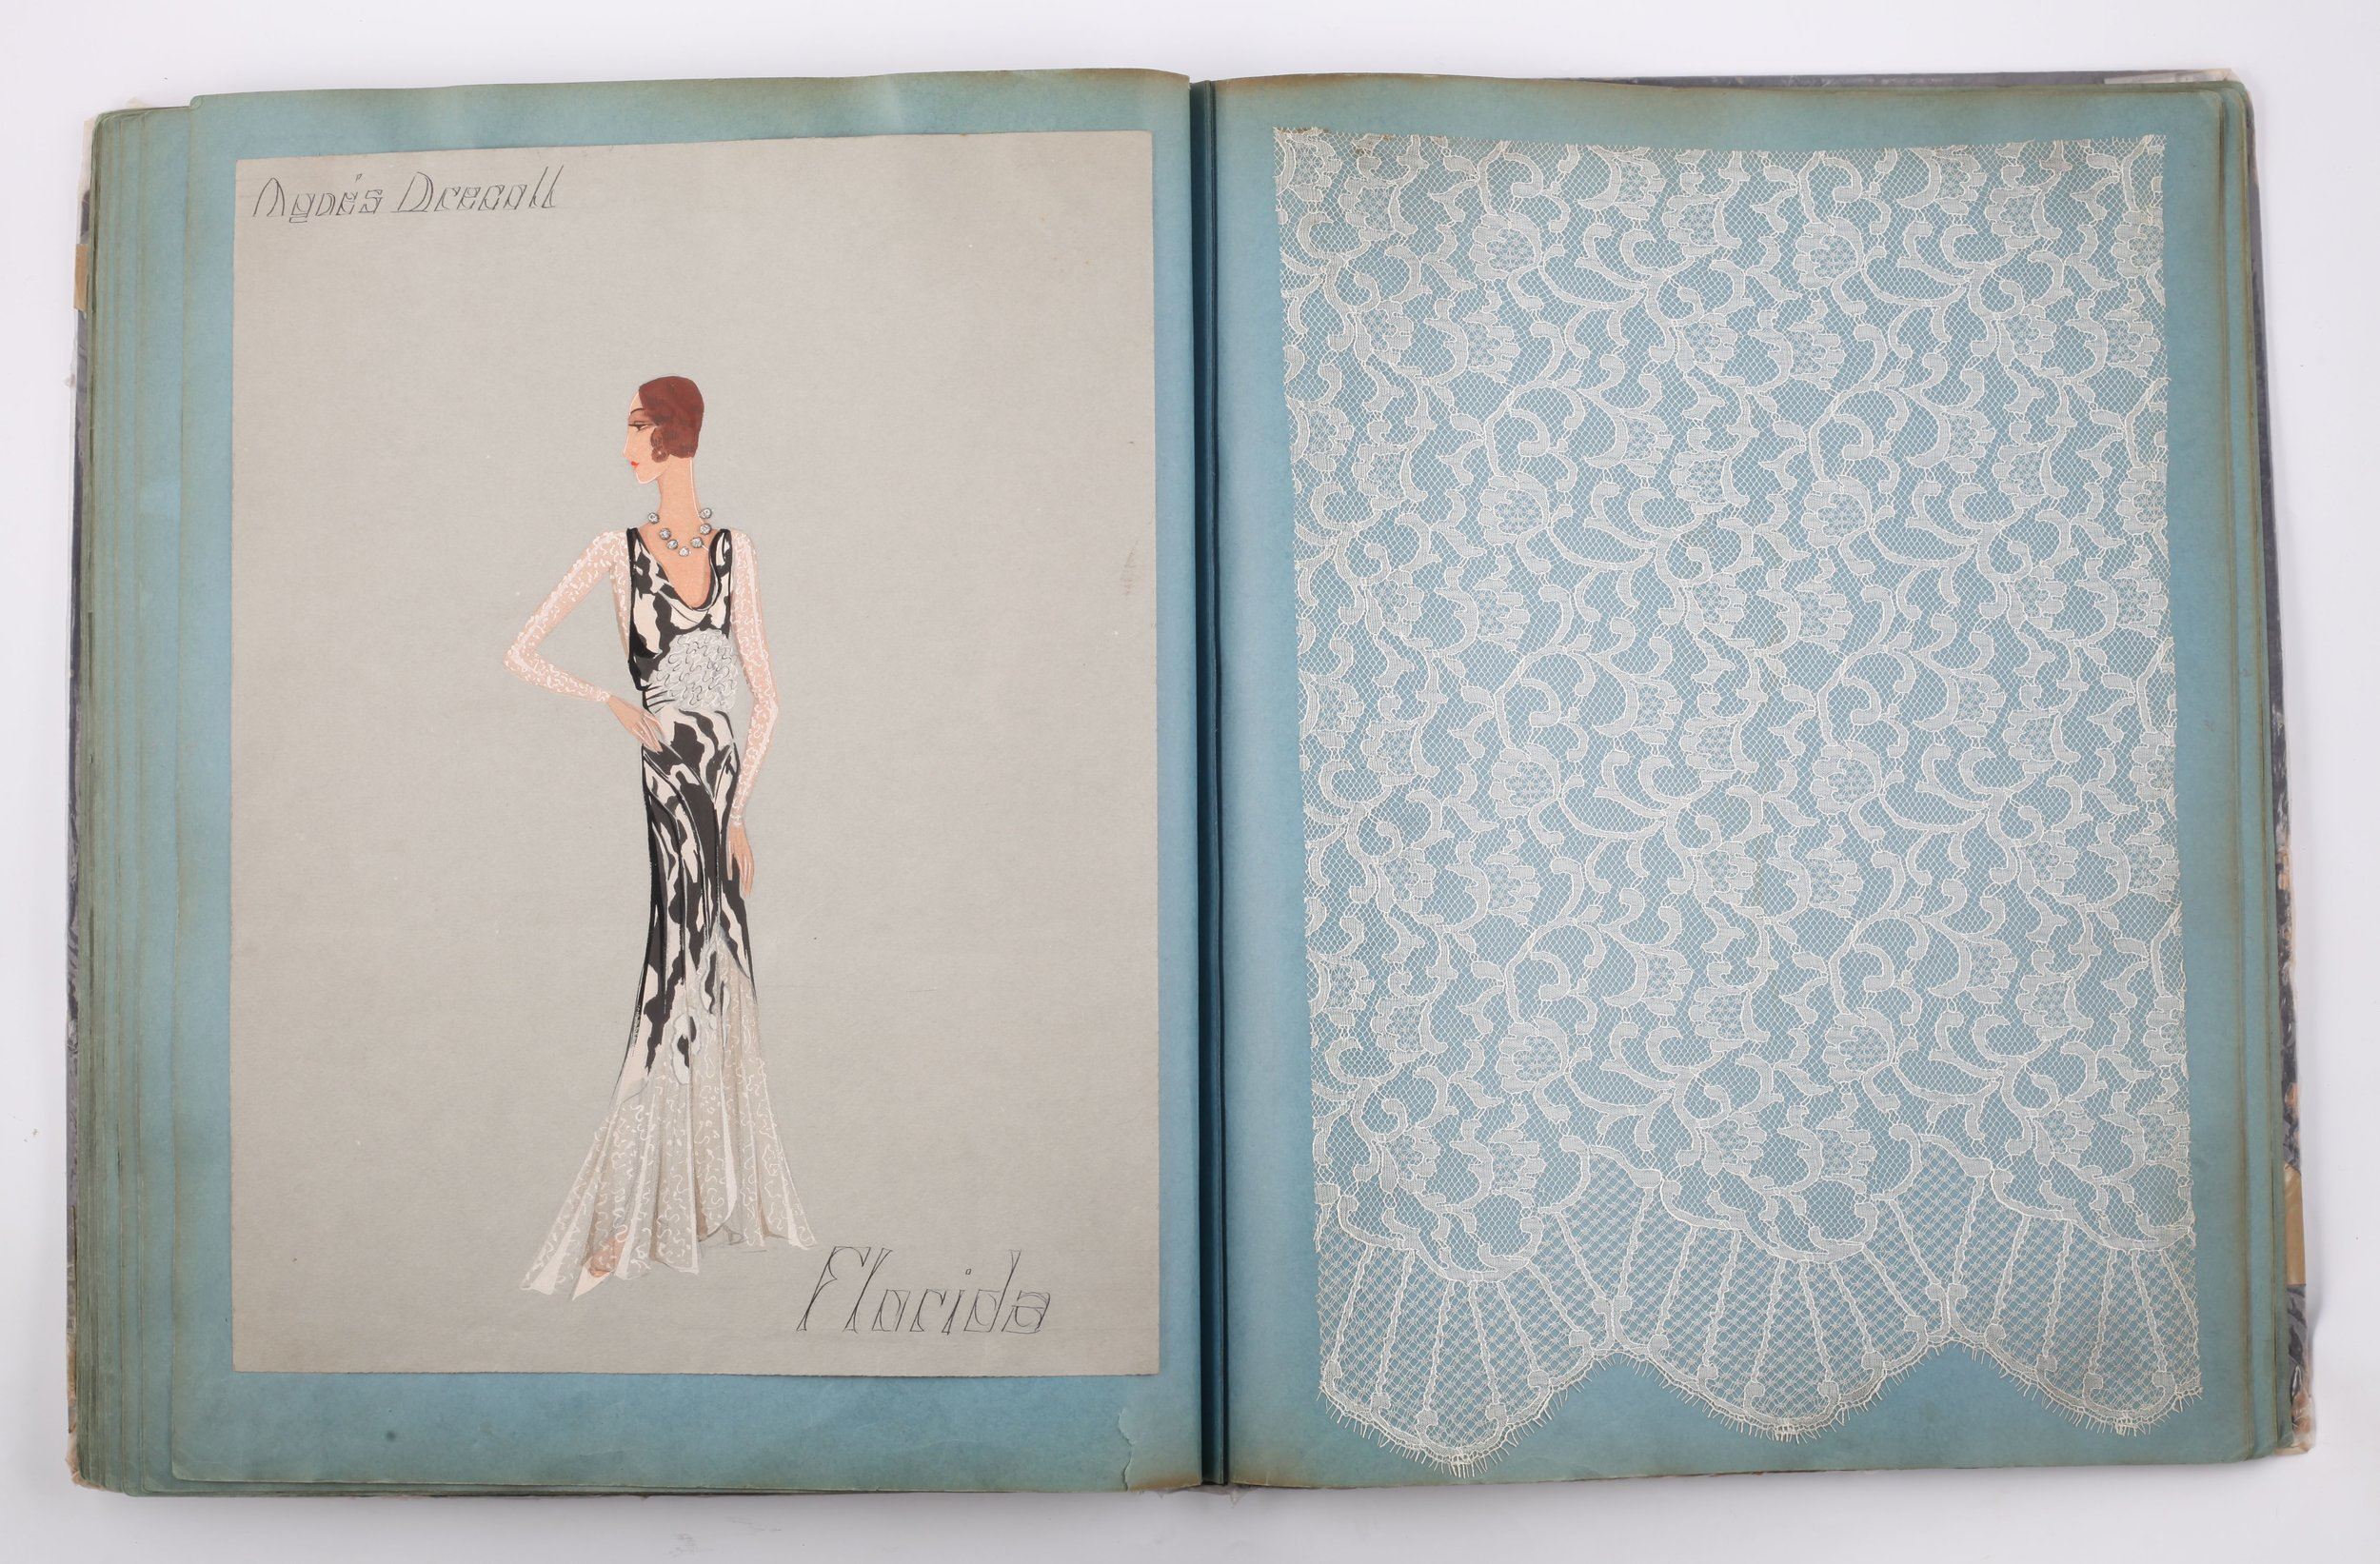 Lace Pattern Book, collection of Nottingham City Museums and Galleries. Image: Freddy Griffiths